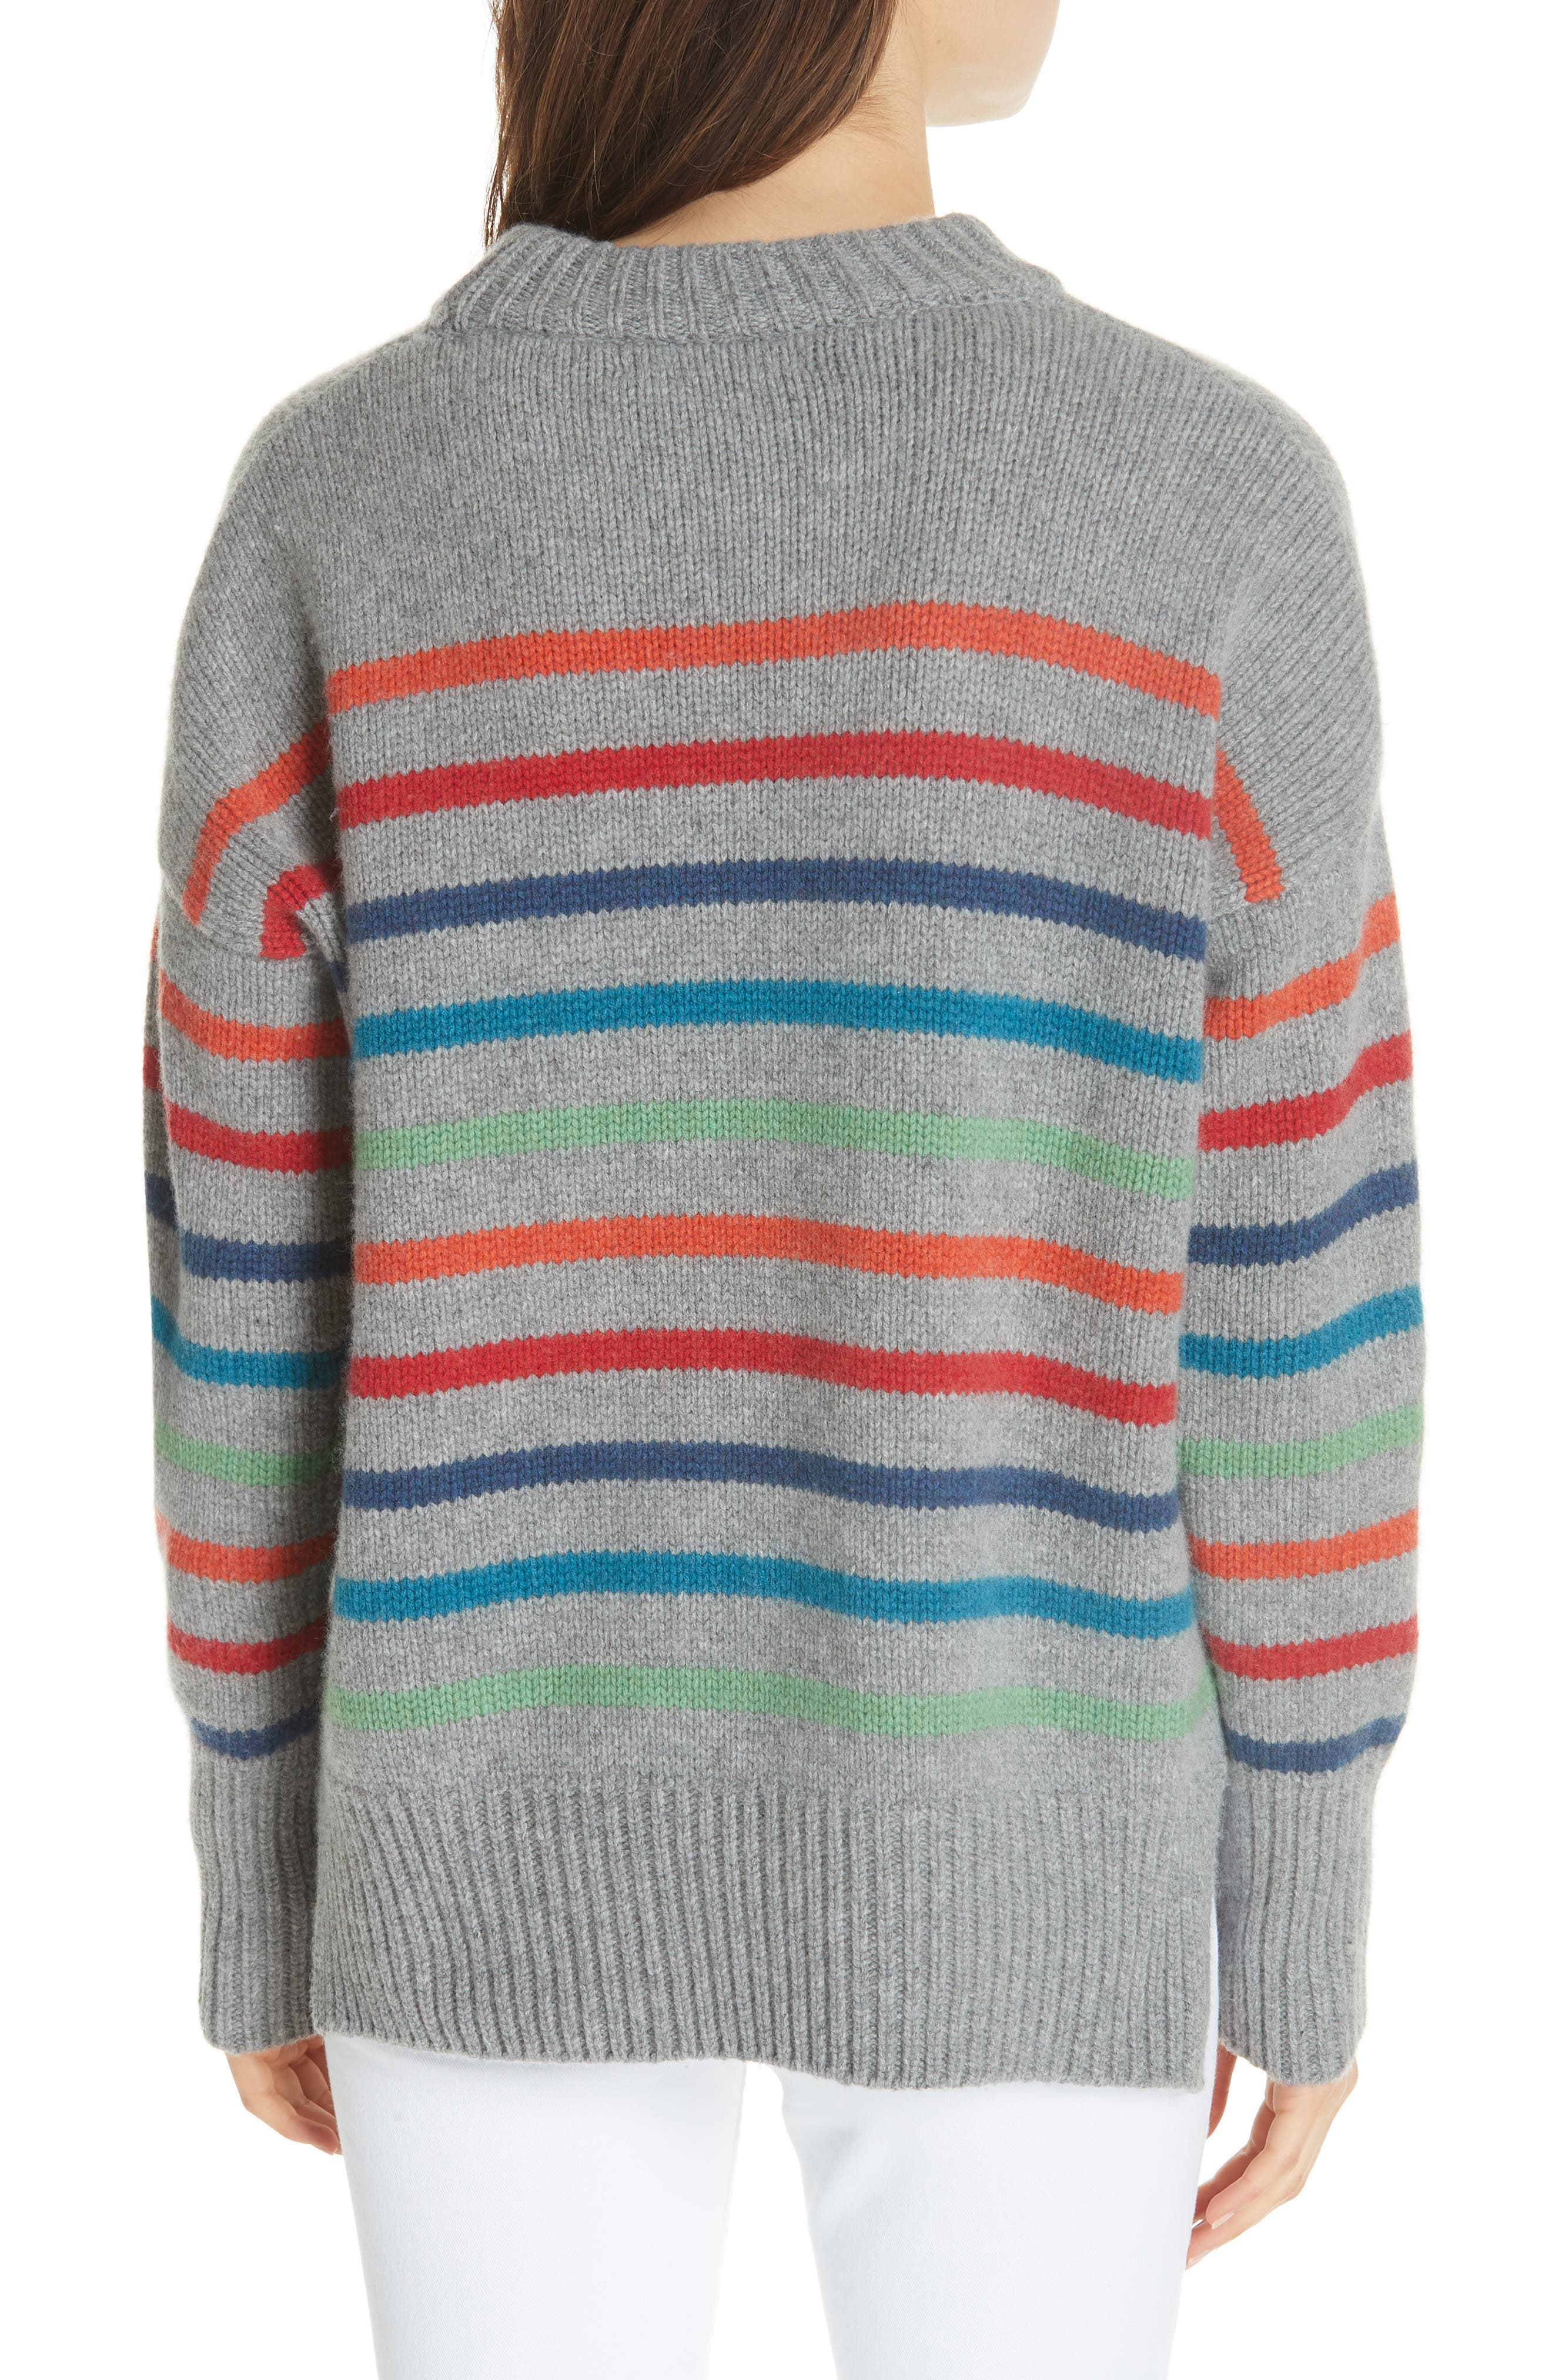 Marin Wool & Cashmere Sweater,                             Alternate thumbnail 2, color,                             RAINBOW STRIPE